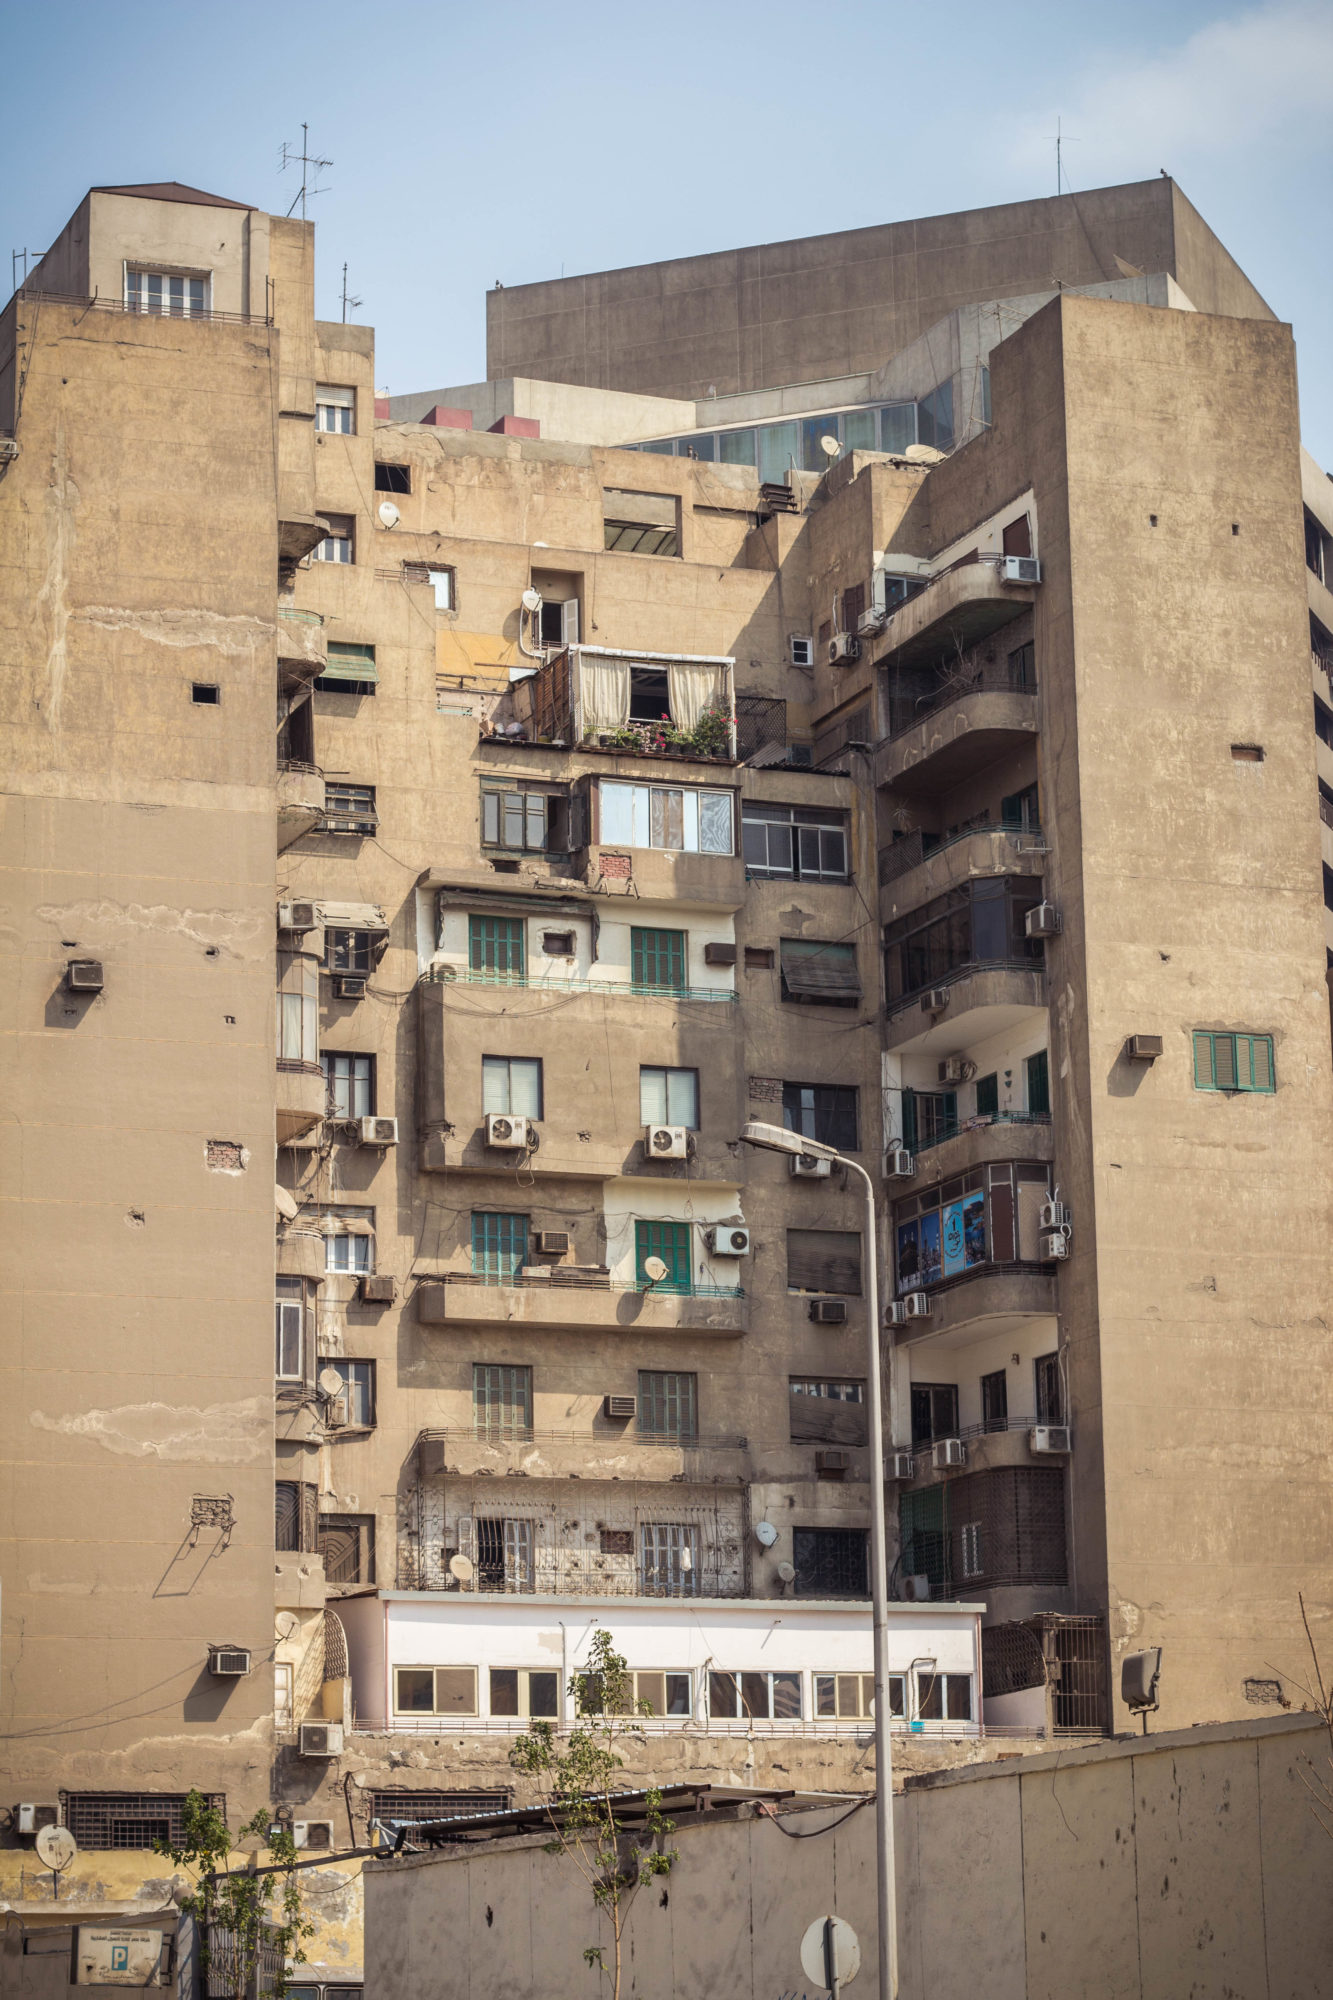 The streets of Cairo, Egypt